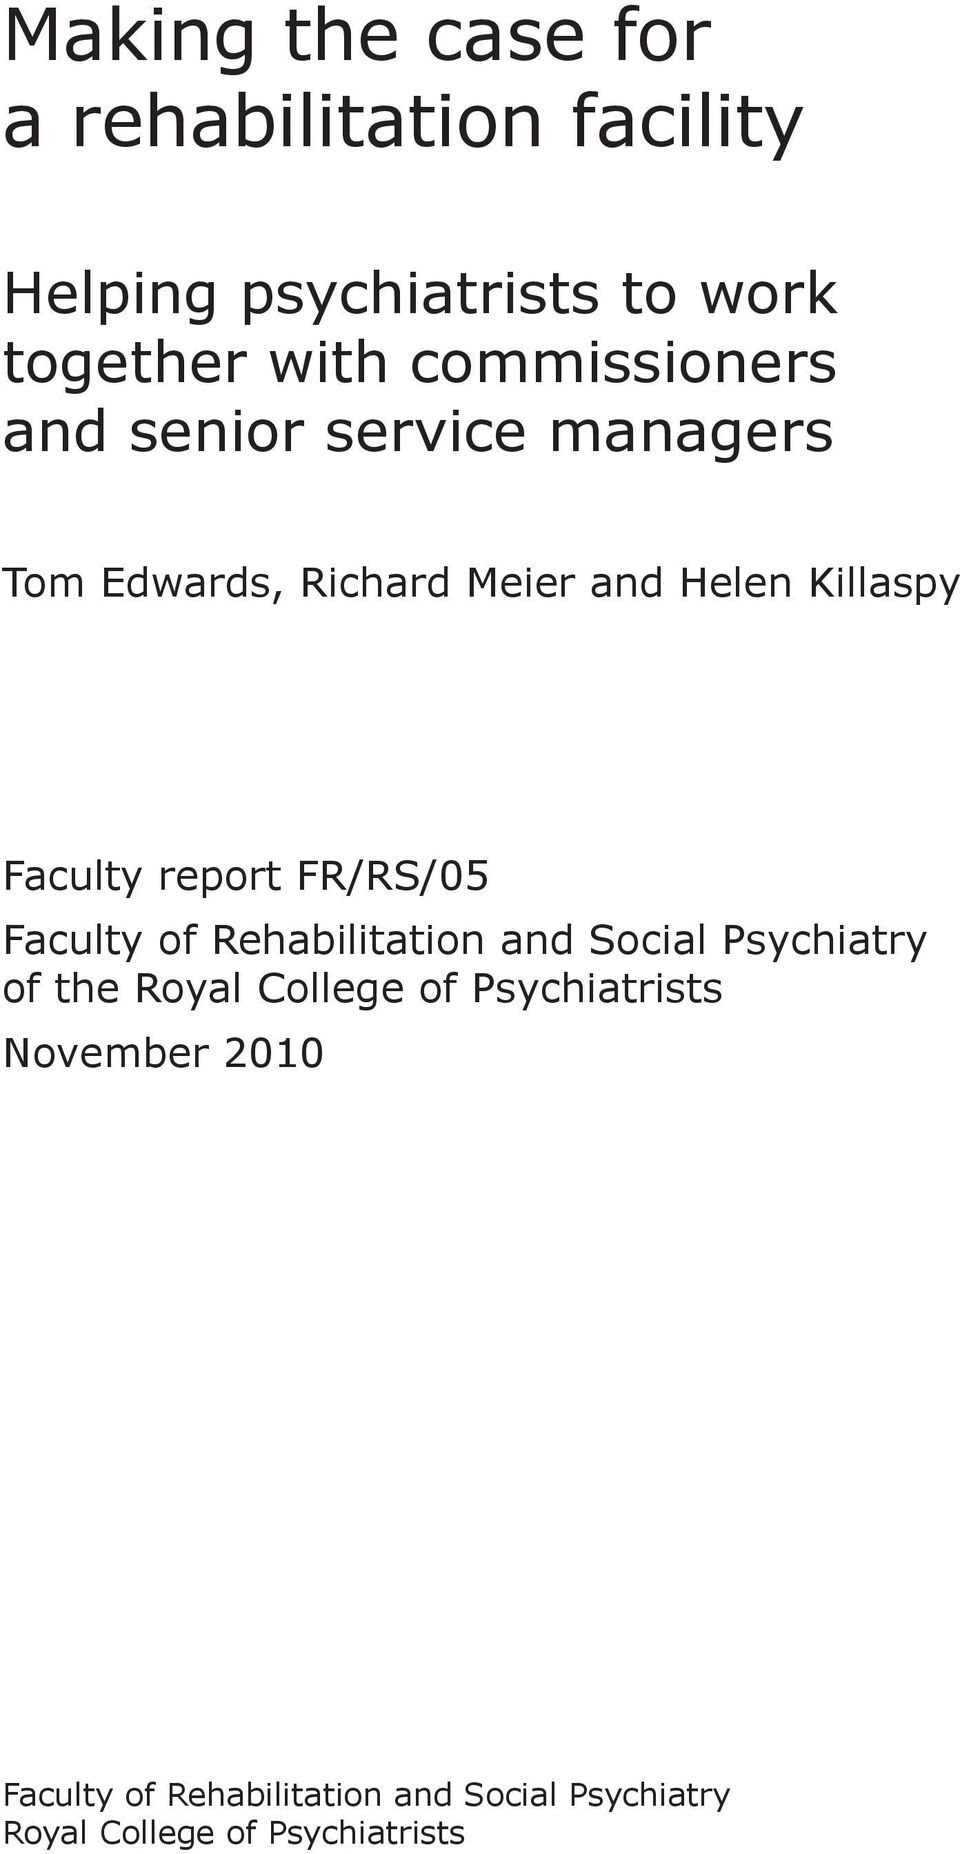 Faculty report FR/RS/05 Faculty of Rehabilitation and Social Psychiatry of the Royal College